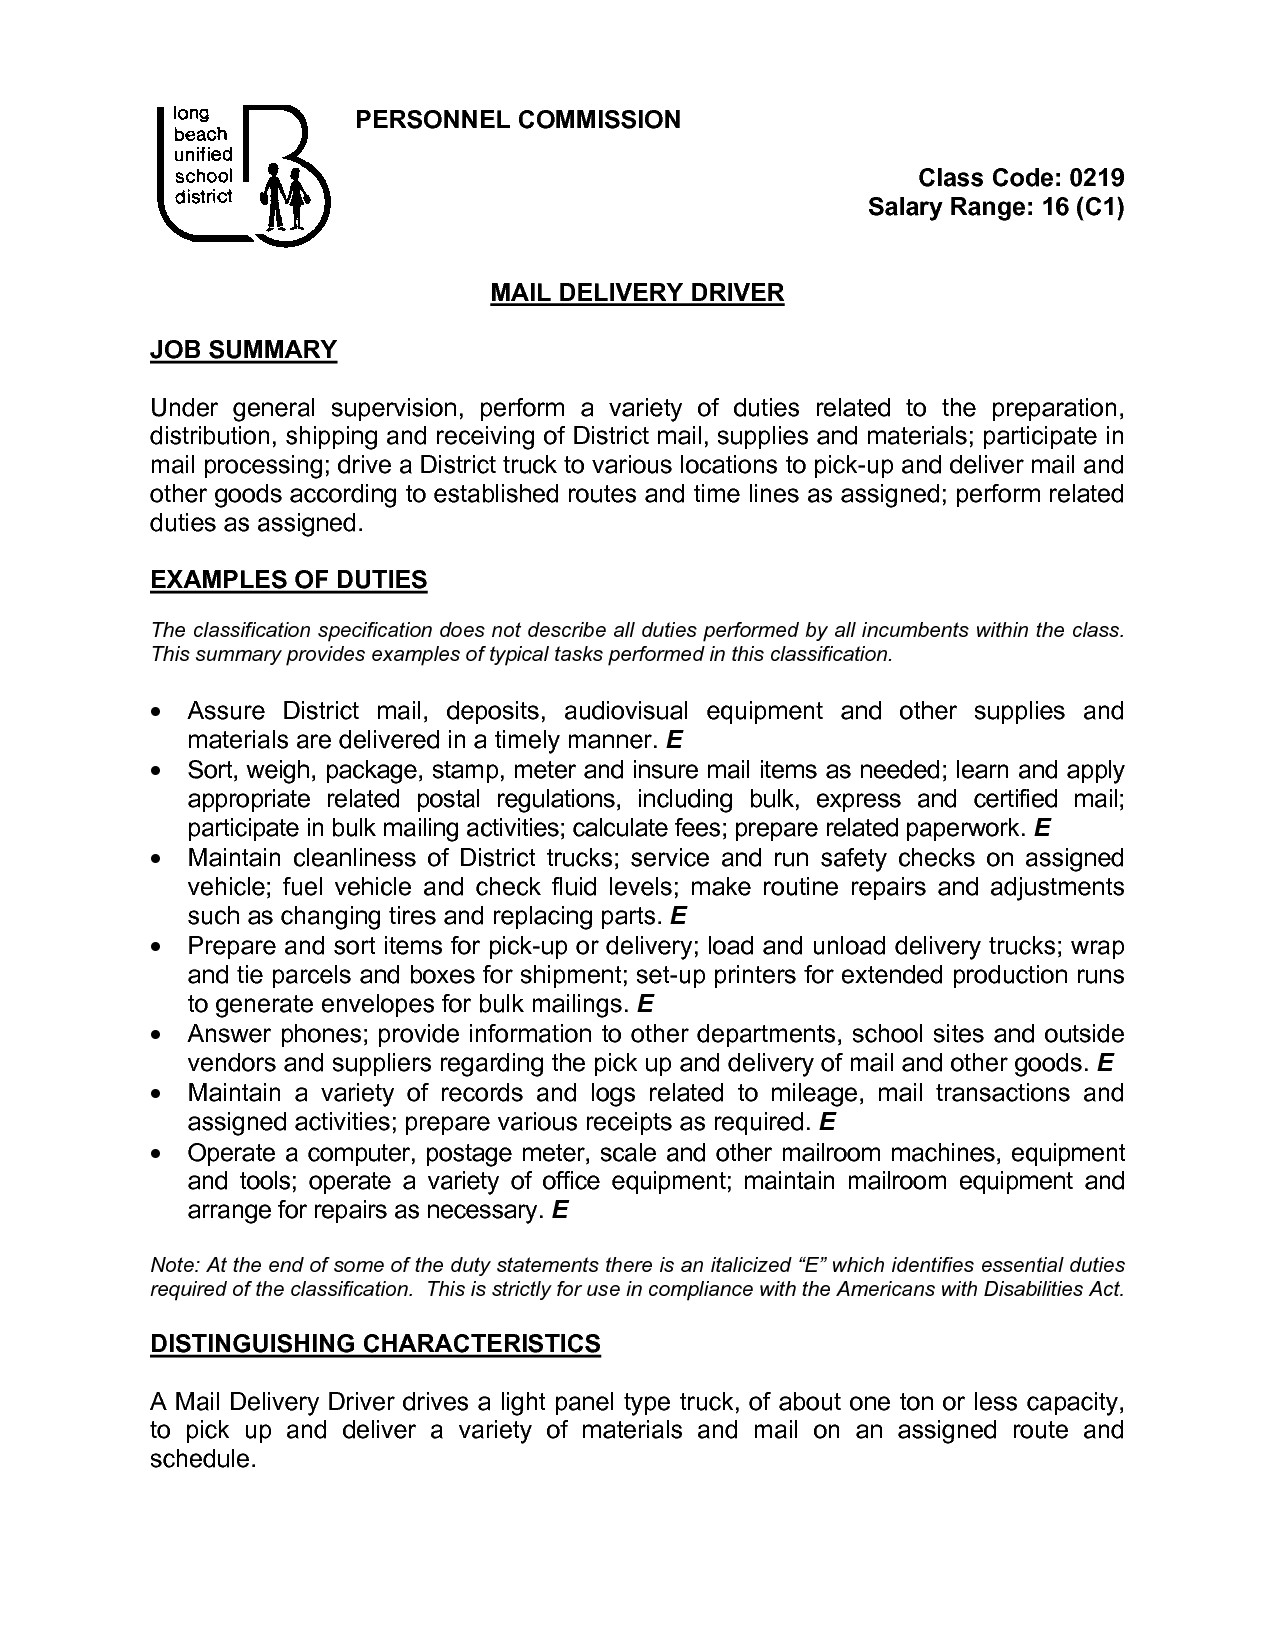 12 forklift operator job description sample samples